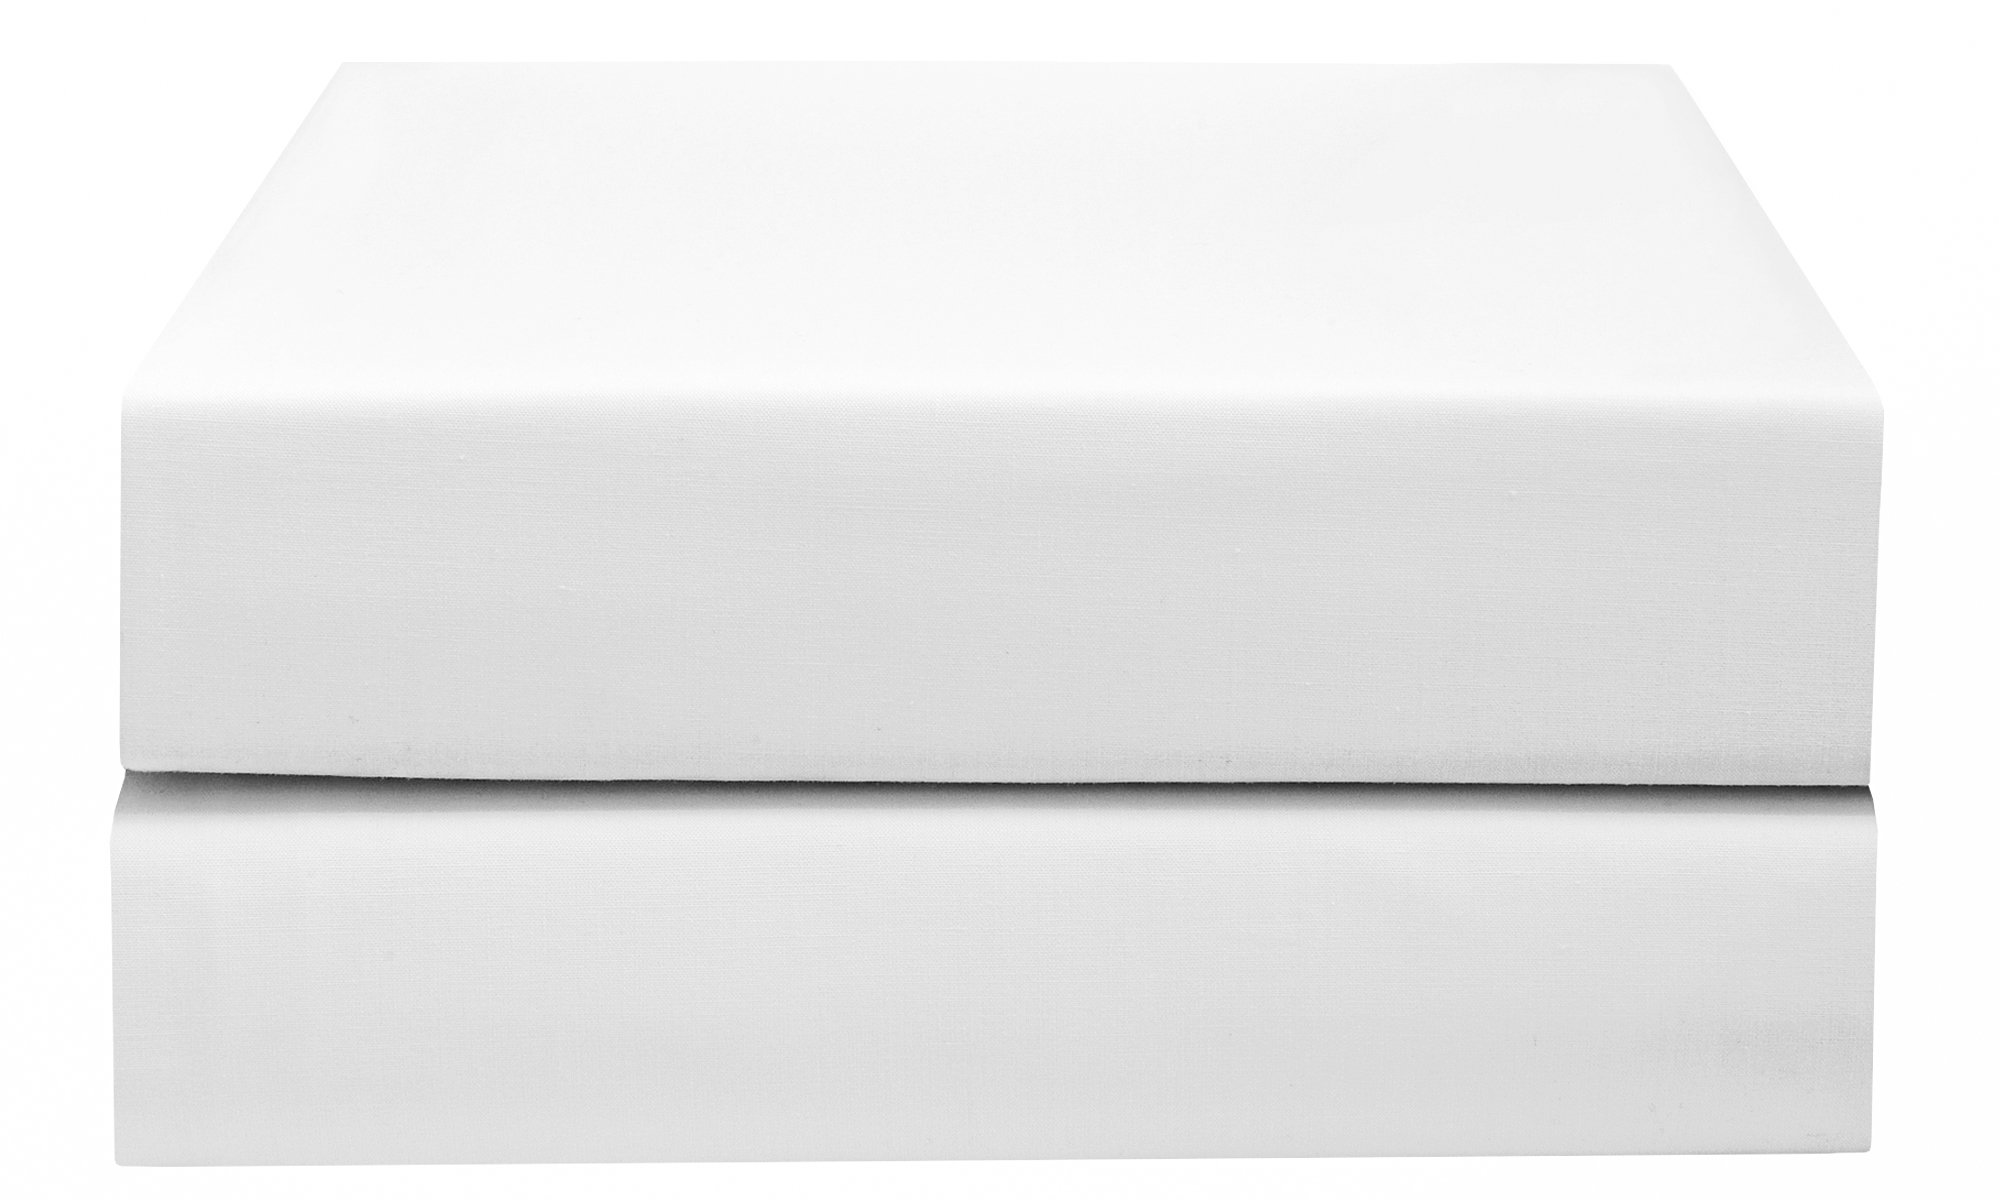 PHF Hotel Collection Flat Sheet 200T Cotton Polyester Percale 2 Pieces King Size White